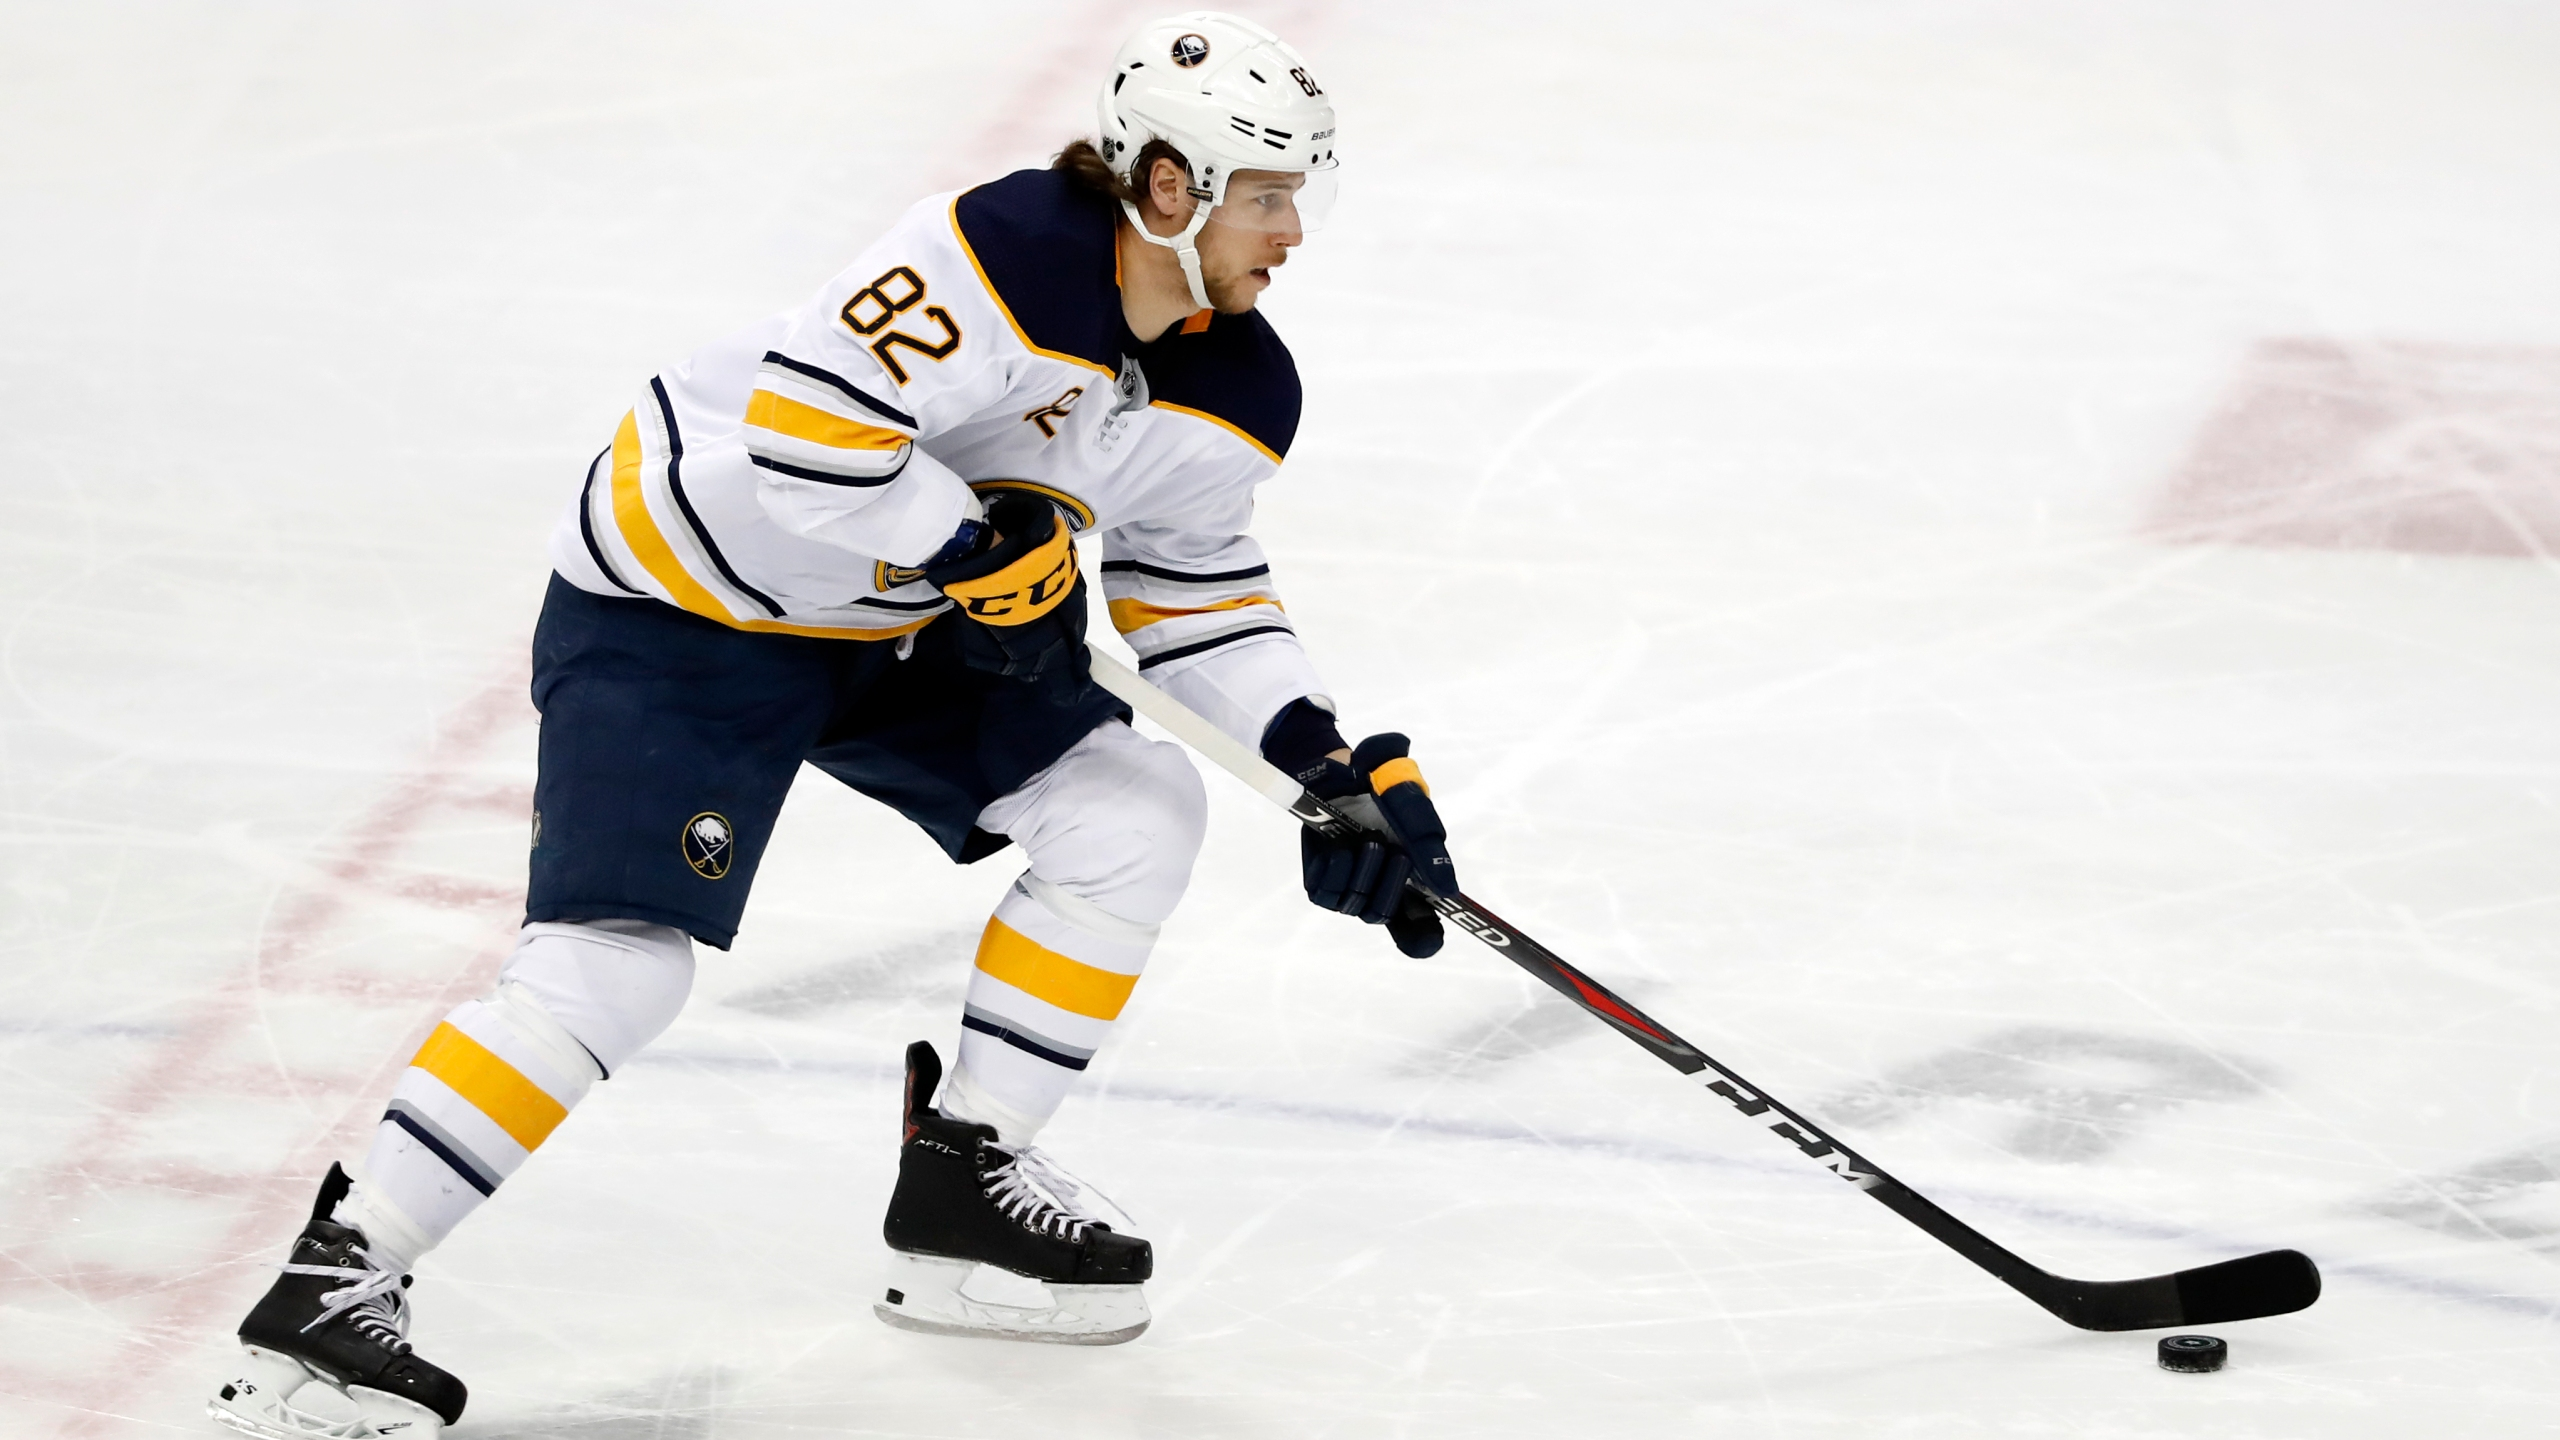 Sabres Stars Hockey_1551129480726